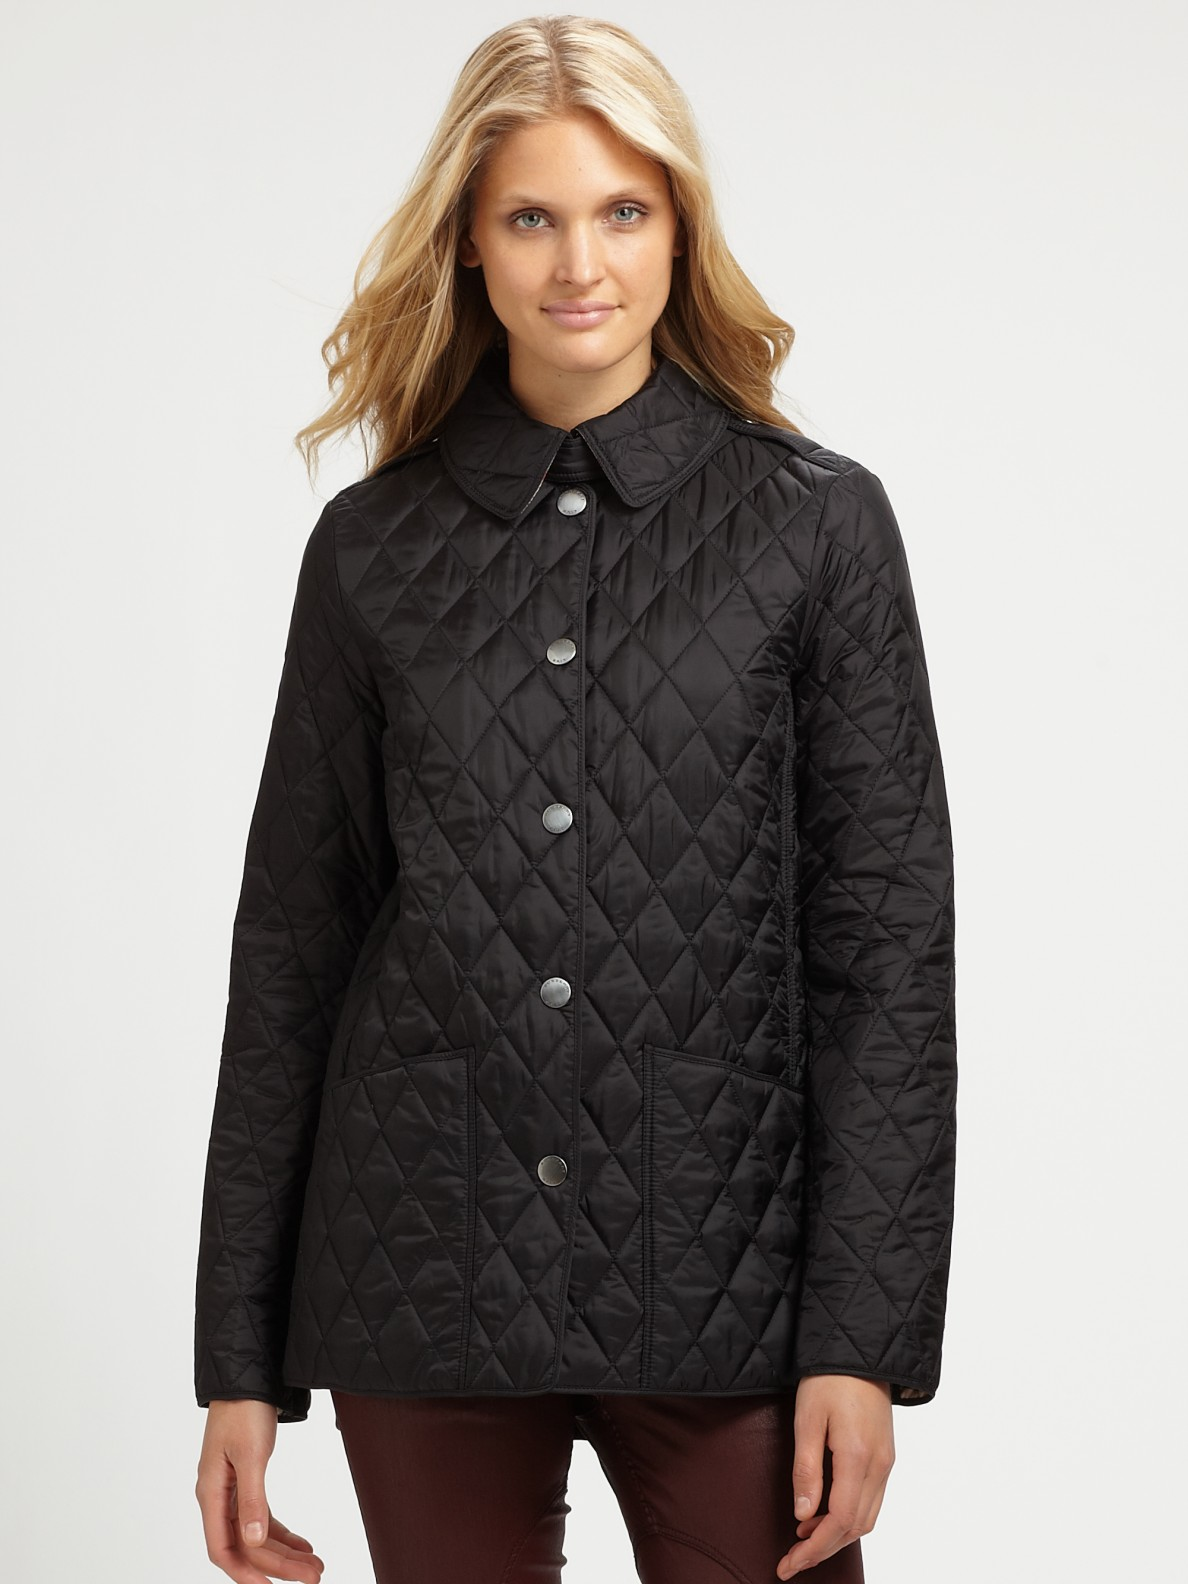 Lyst - Burberry brit Pirmont Quilted Jacket in Black : burberry pirmont quilted jacket - Adamdwight.com